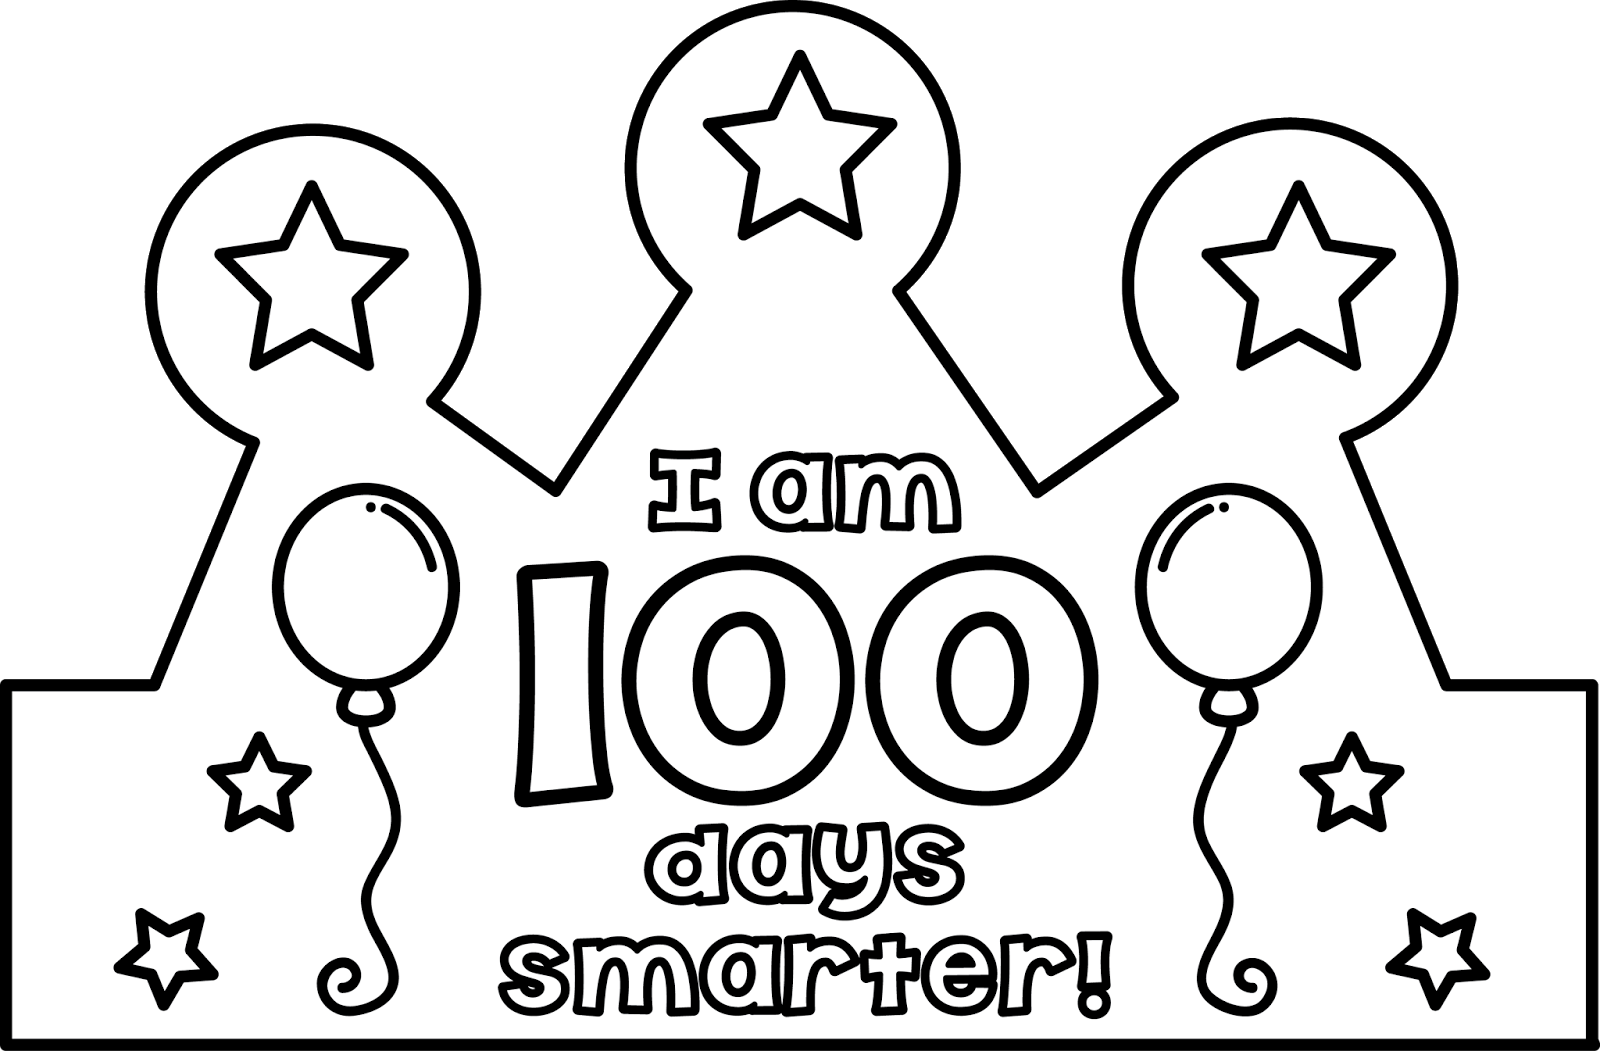 100th day of school clipart black and white graphic library 100th Day Crown (Teacher Laura) | Pinterest | Crown, School and Teacher graphic library